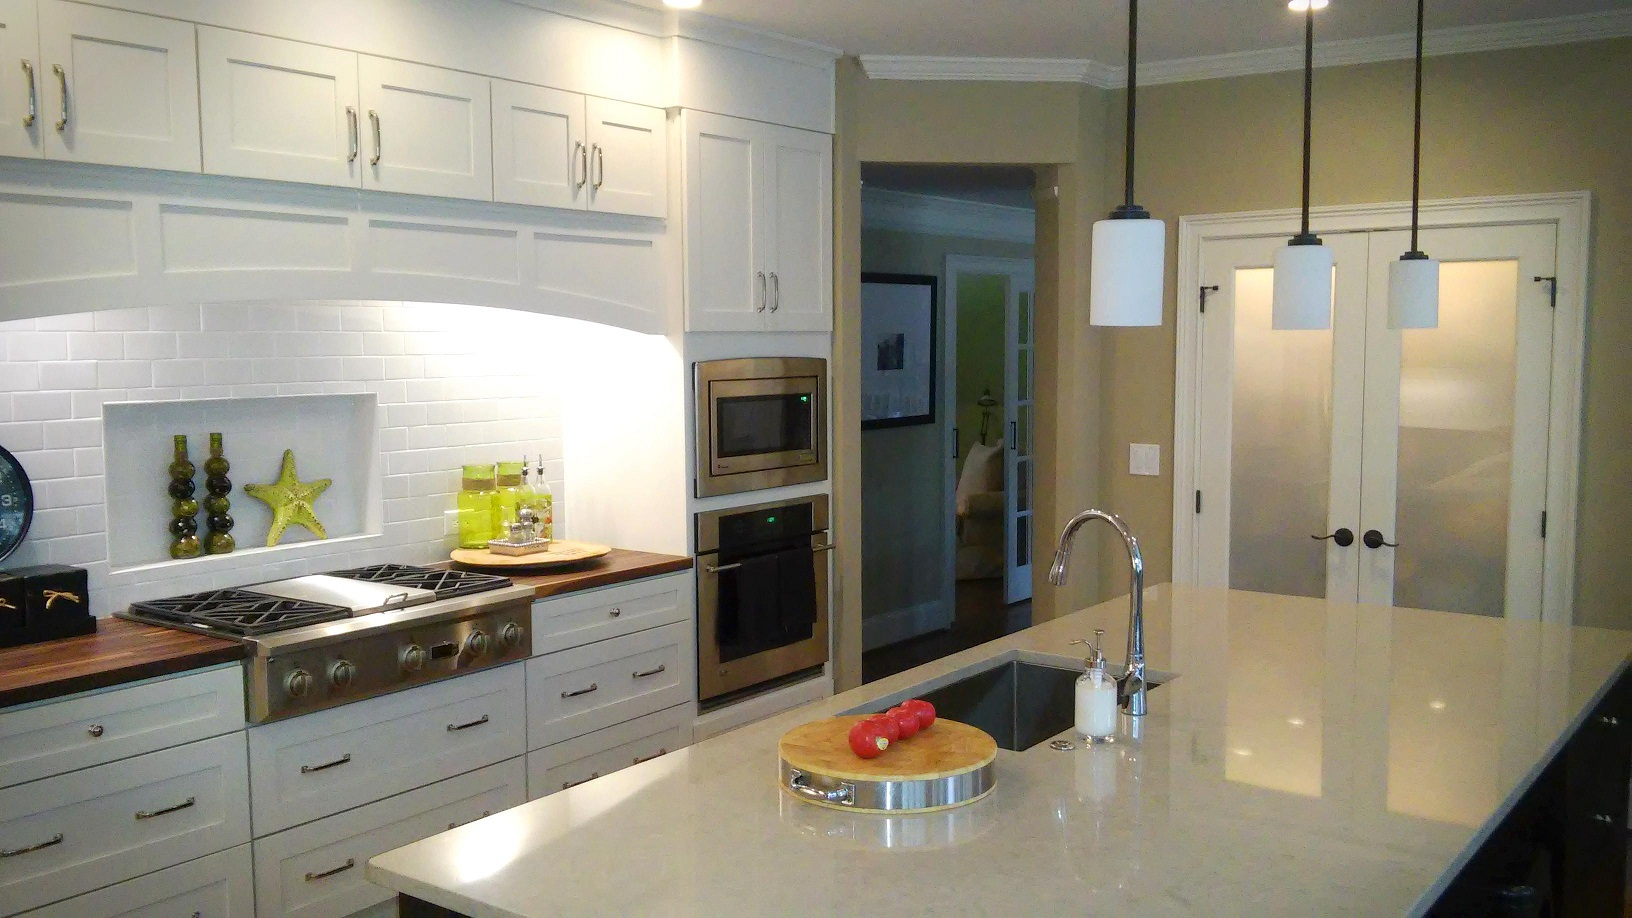 Modern Kitchen - kitchen renovations in Huntsville AL & Ready To Assemble Cabinets - Huntsville AL - Affordable Cabinets ...